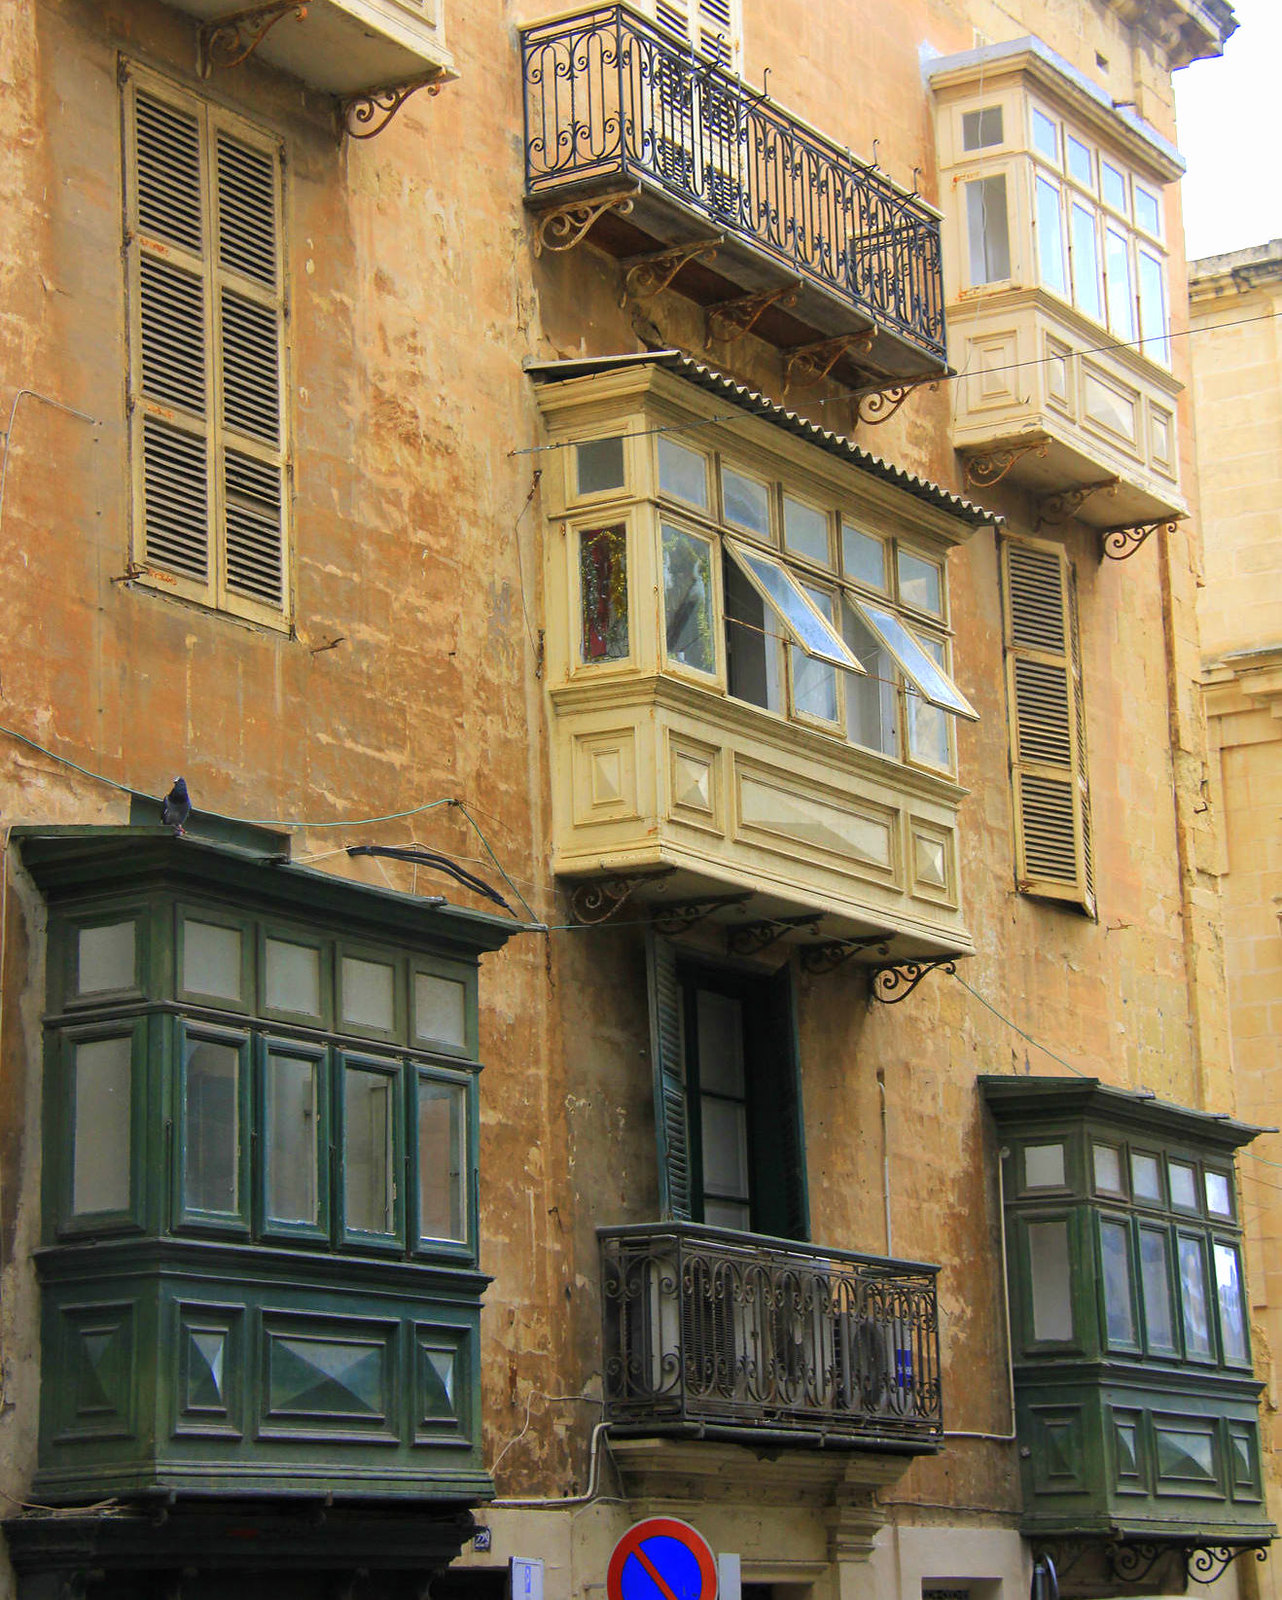 Valletta has famous wooden box windows